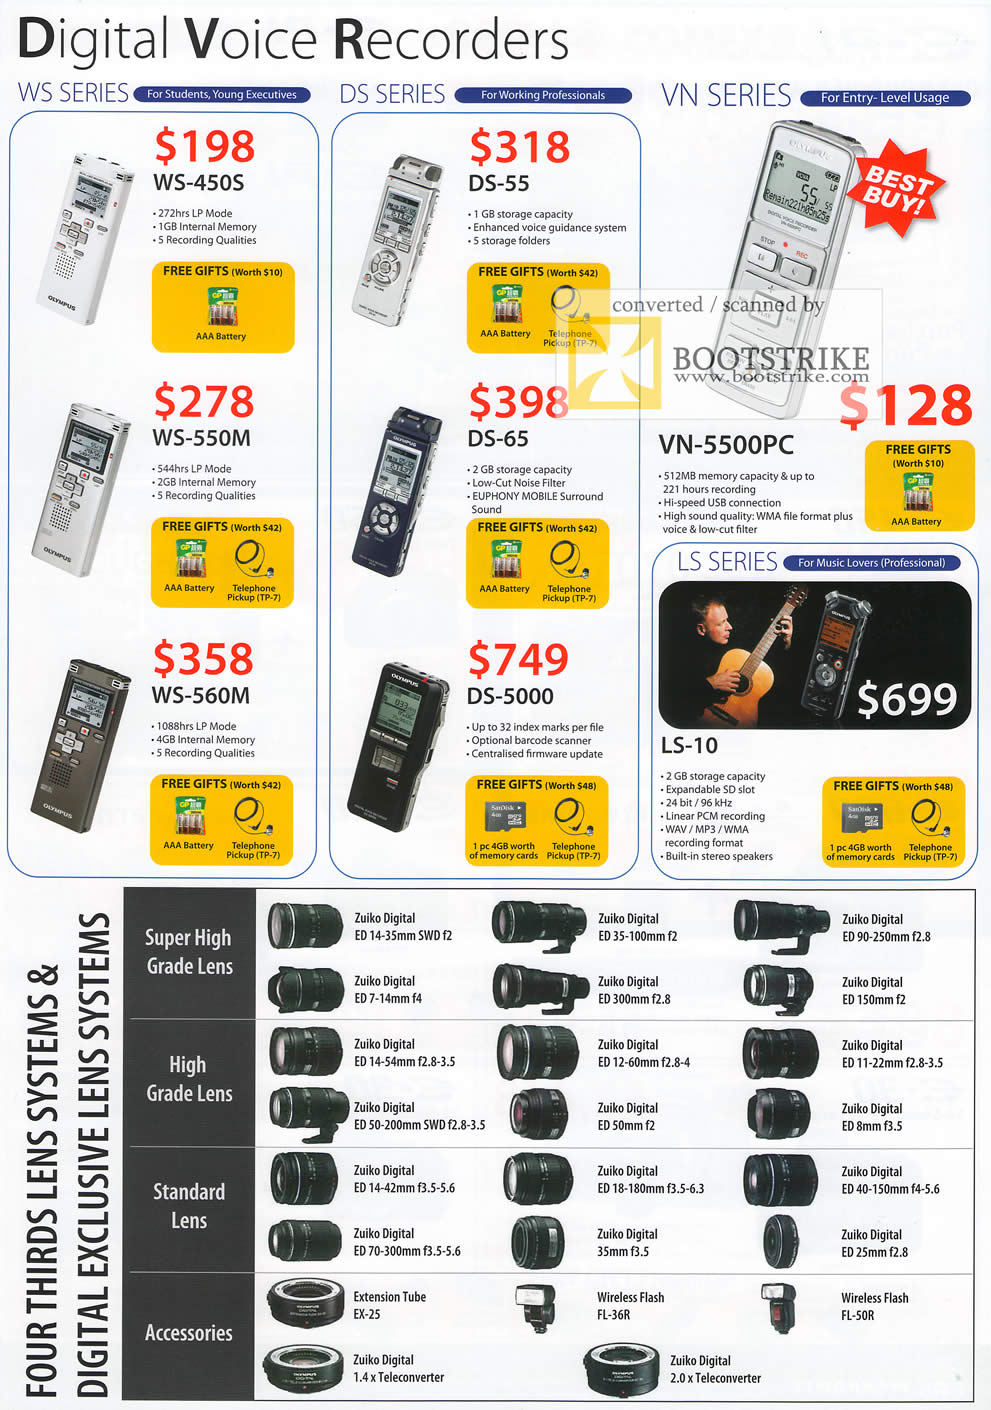 Comex 2009 price list image brochure of Olympus Digital Voice Recorders WS DS VN